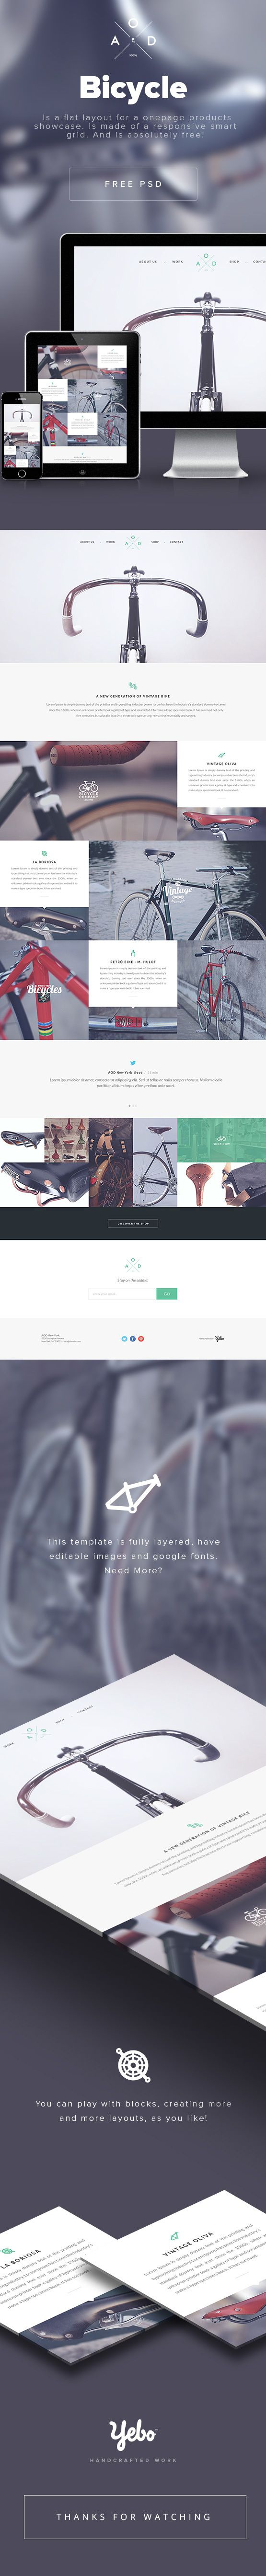 Bicycle Free PSD by Yebo